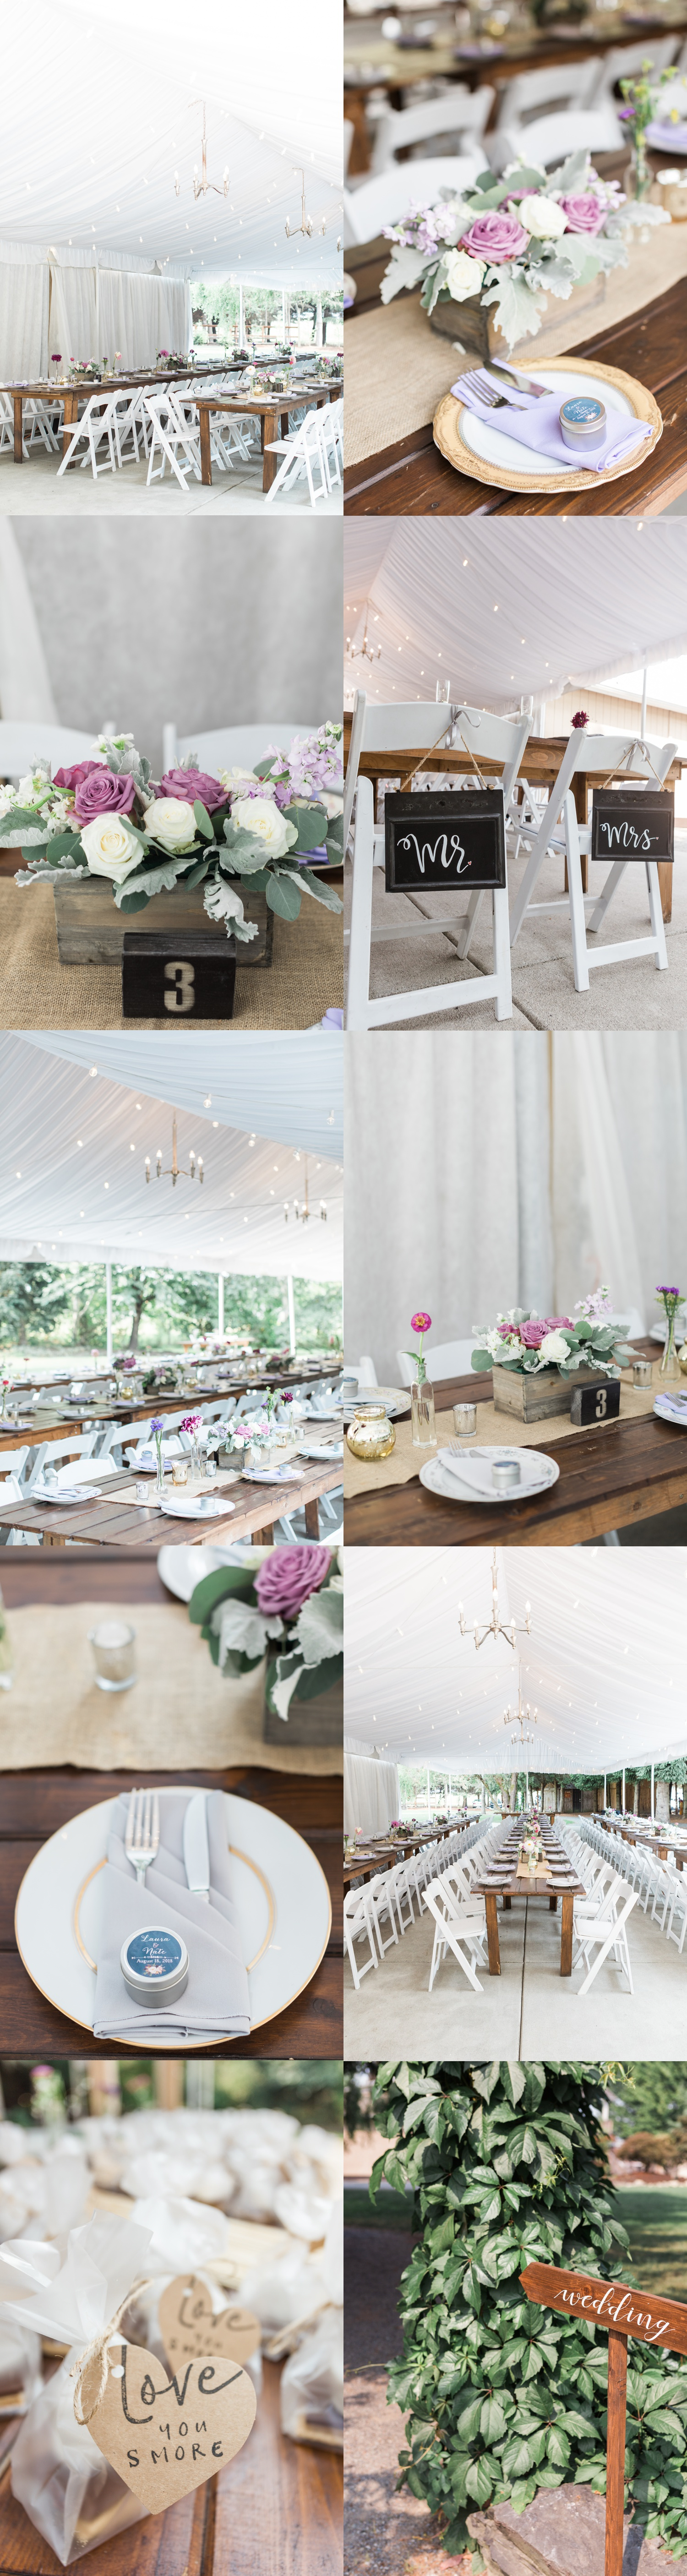 A photo of the reception area and decor for a wedding at Woodland Meadow Farms in Snohomish, a wedding venue near Seattle, WA. | Joanna Monger Photography | Seattle & Snohomish Photographer